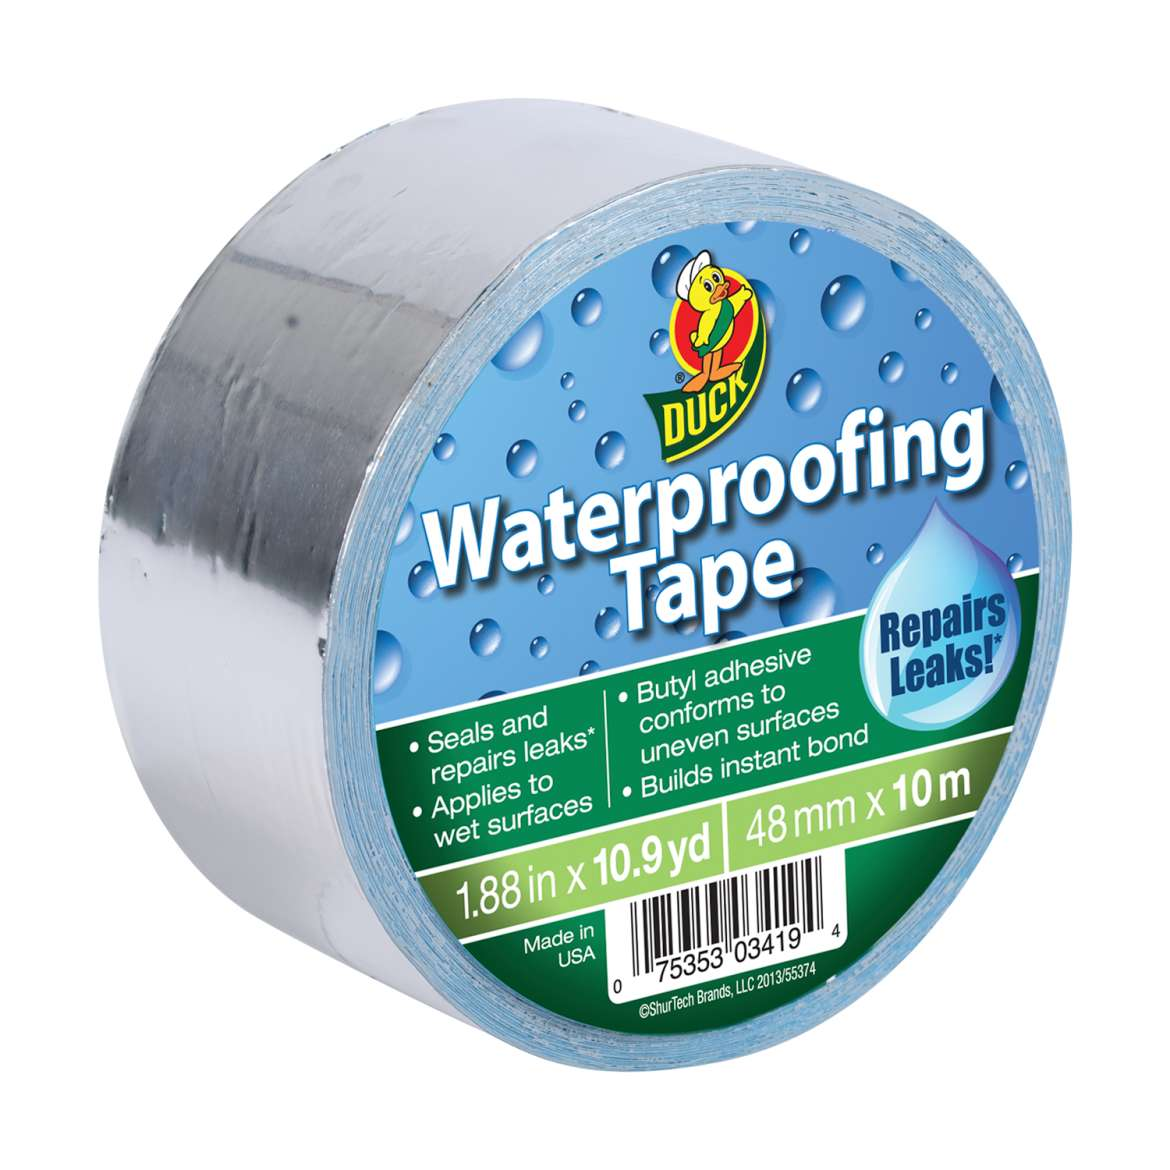 Using waterproof repair tape for sealing leaks